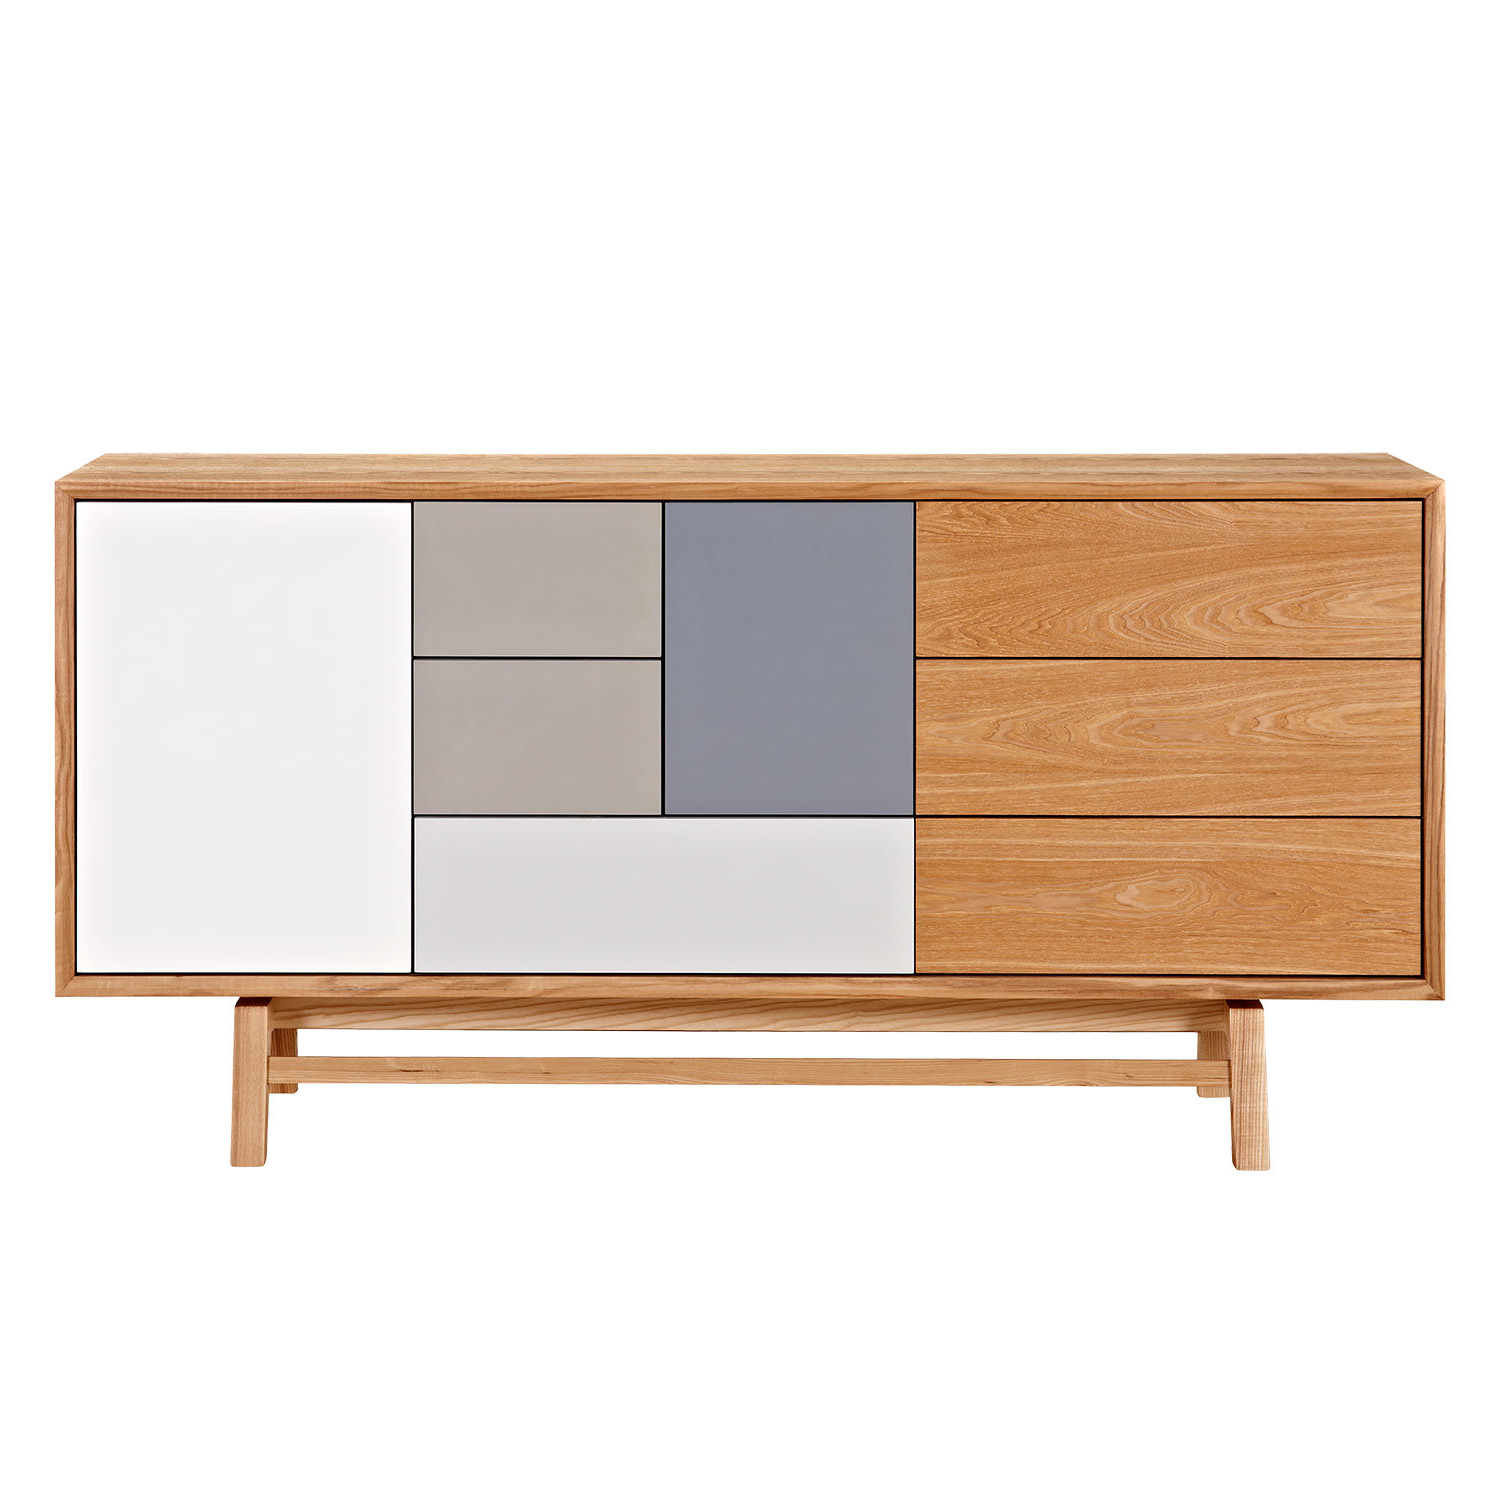 Wayfair For Favorite Solar Refinement Sideboards (View 18 of 20)